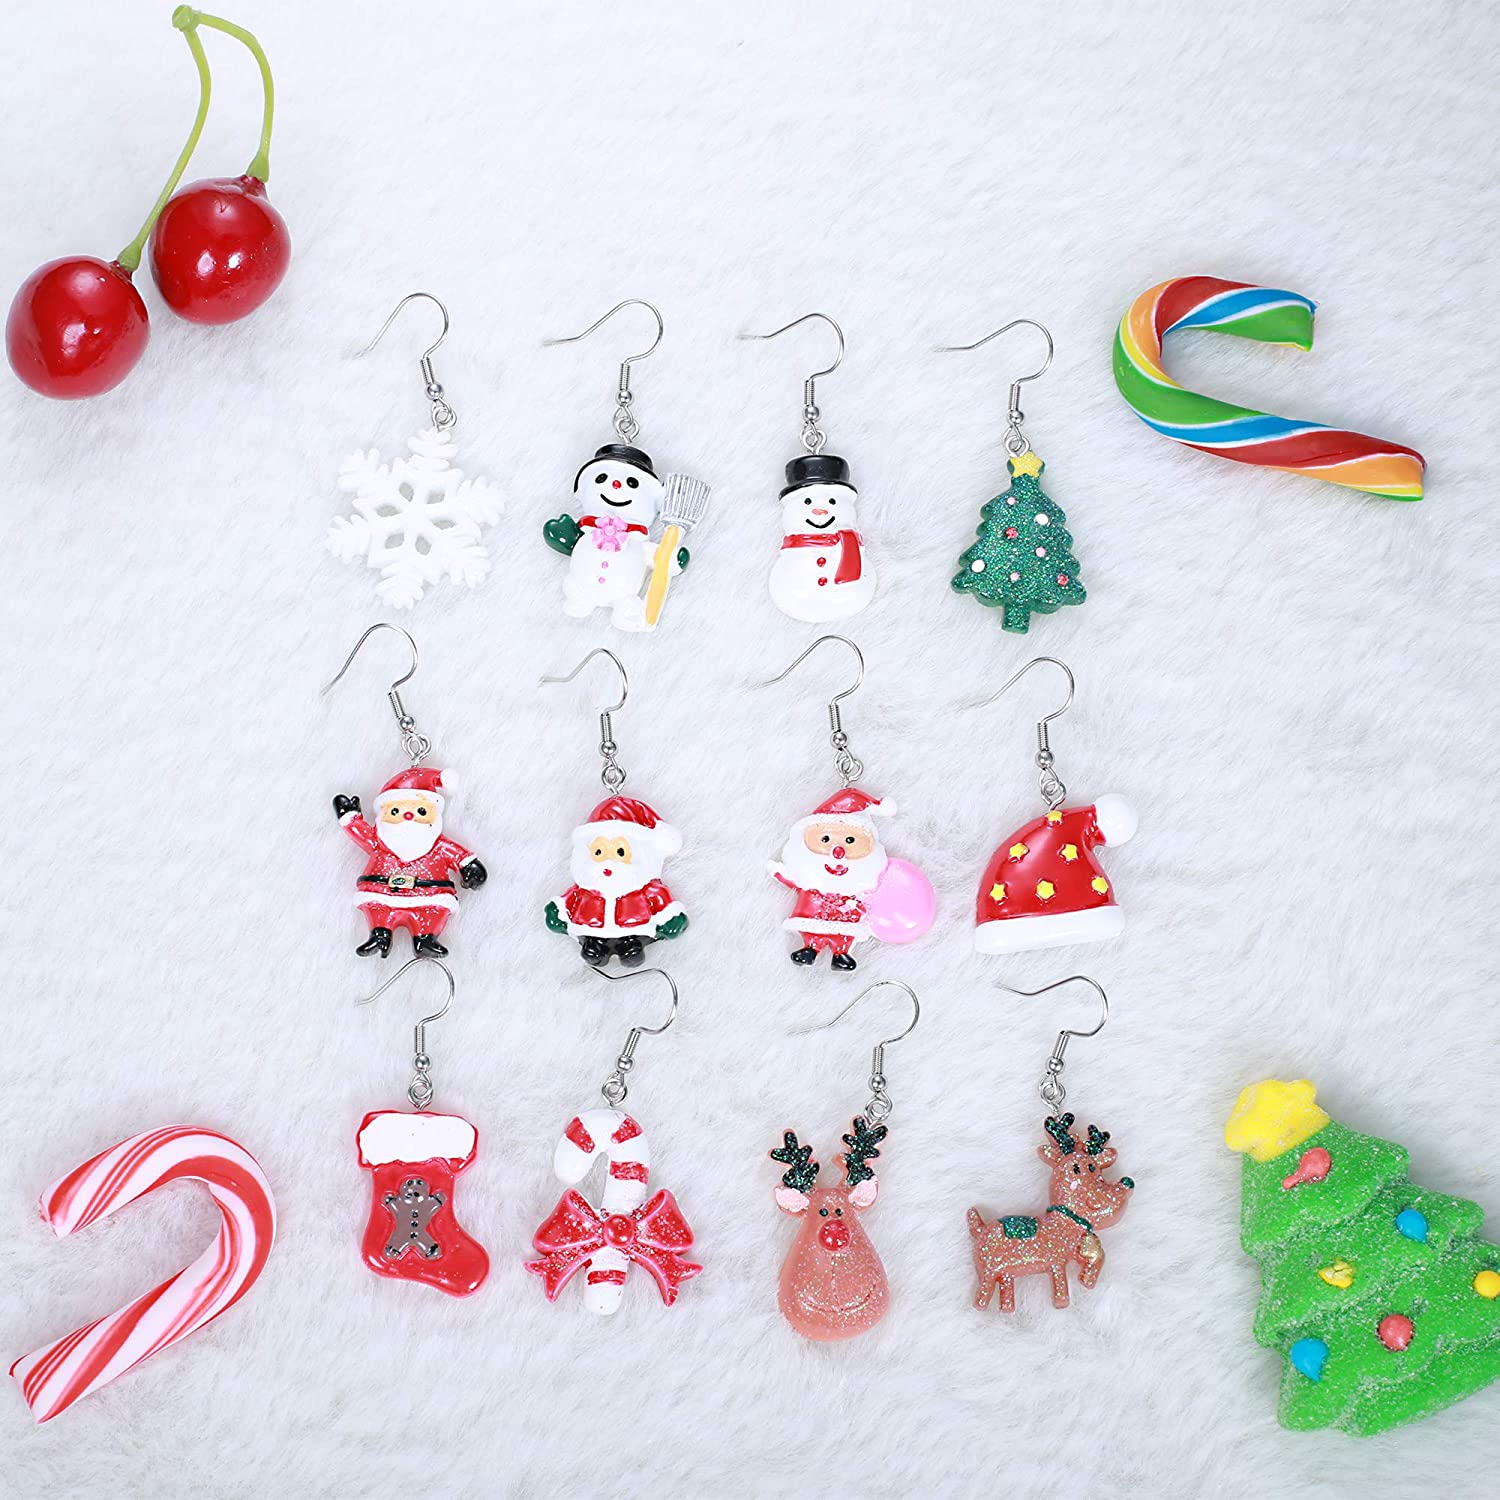 4 Pairs Earrings for Women Teens Girls Kids Jewelry Set Snowflake Abduct Deer Sock Santa Claus Christmas Tree Bell Xmas Handmade Christmas Dangle Earrings Holiday Festive Jewelry